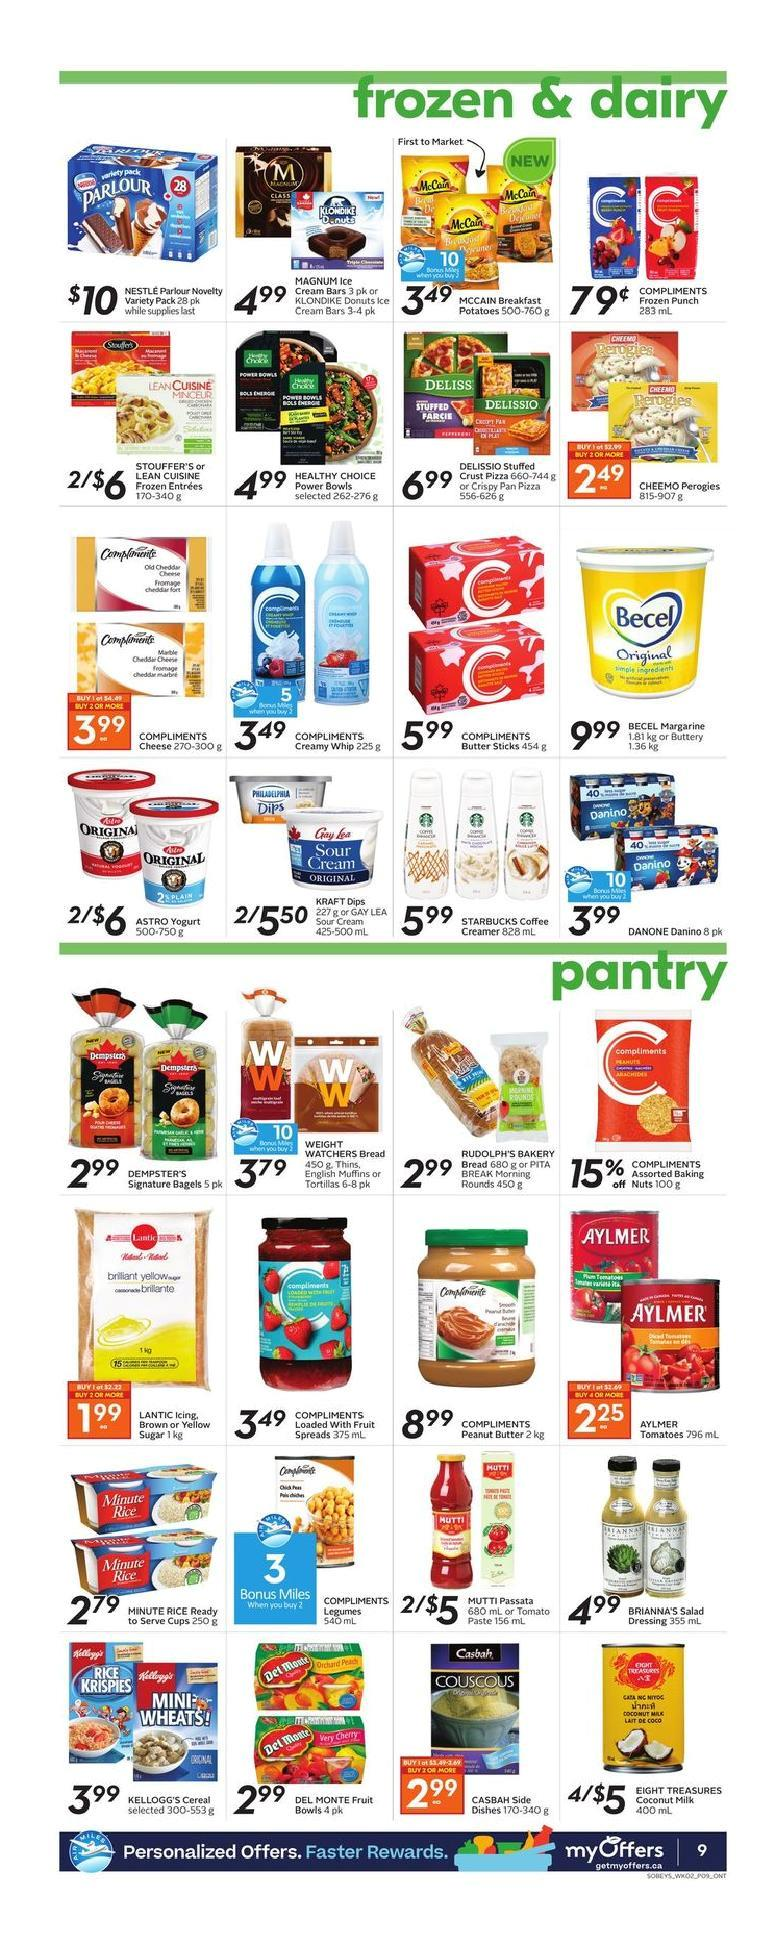 15 Sobeys ON Flyer May 6 May 12 2021